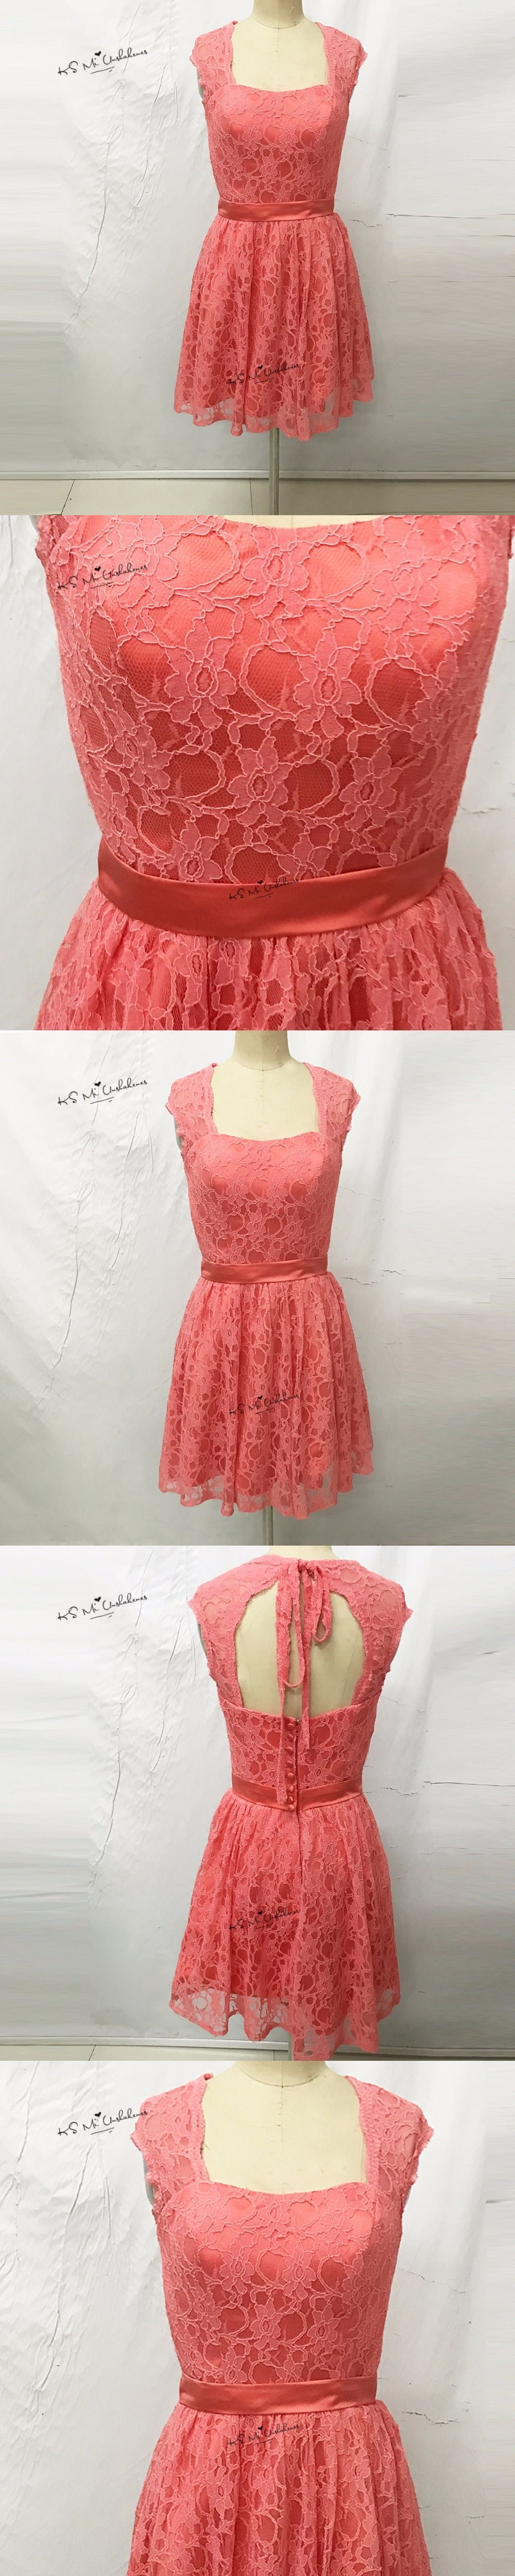 coral pink bridesmaid dress short for girls lace wedding party